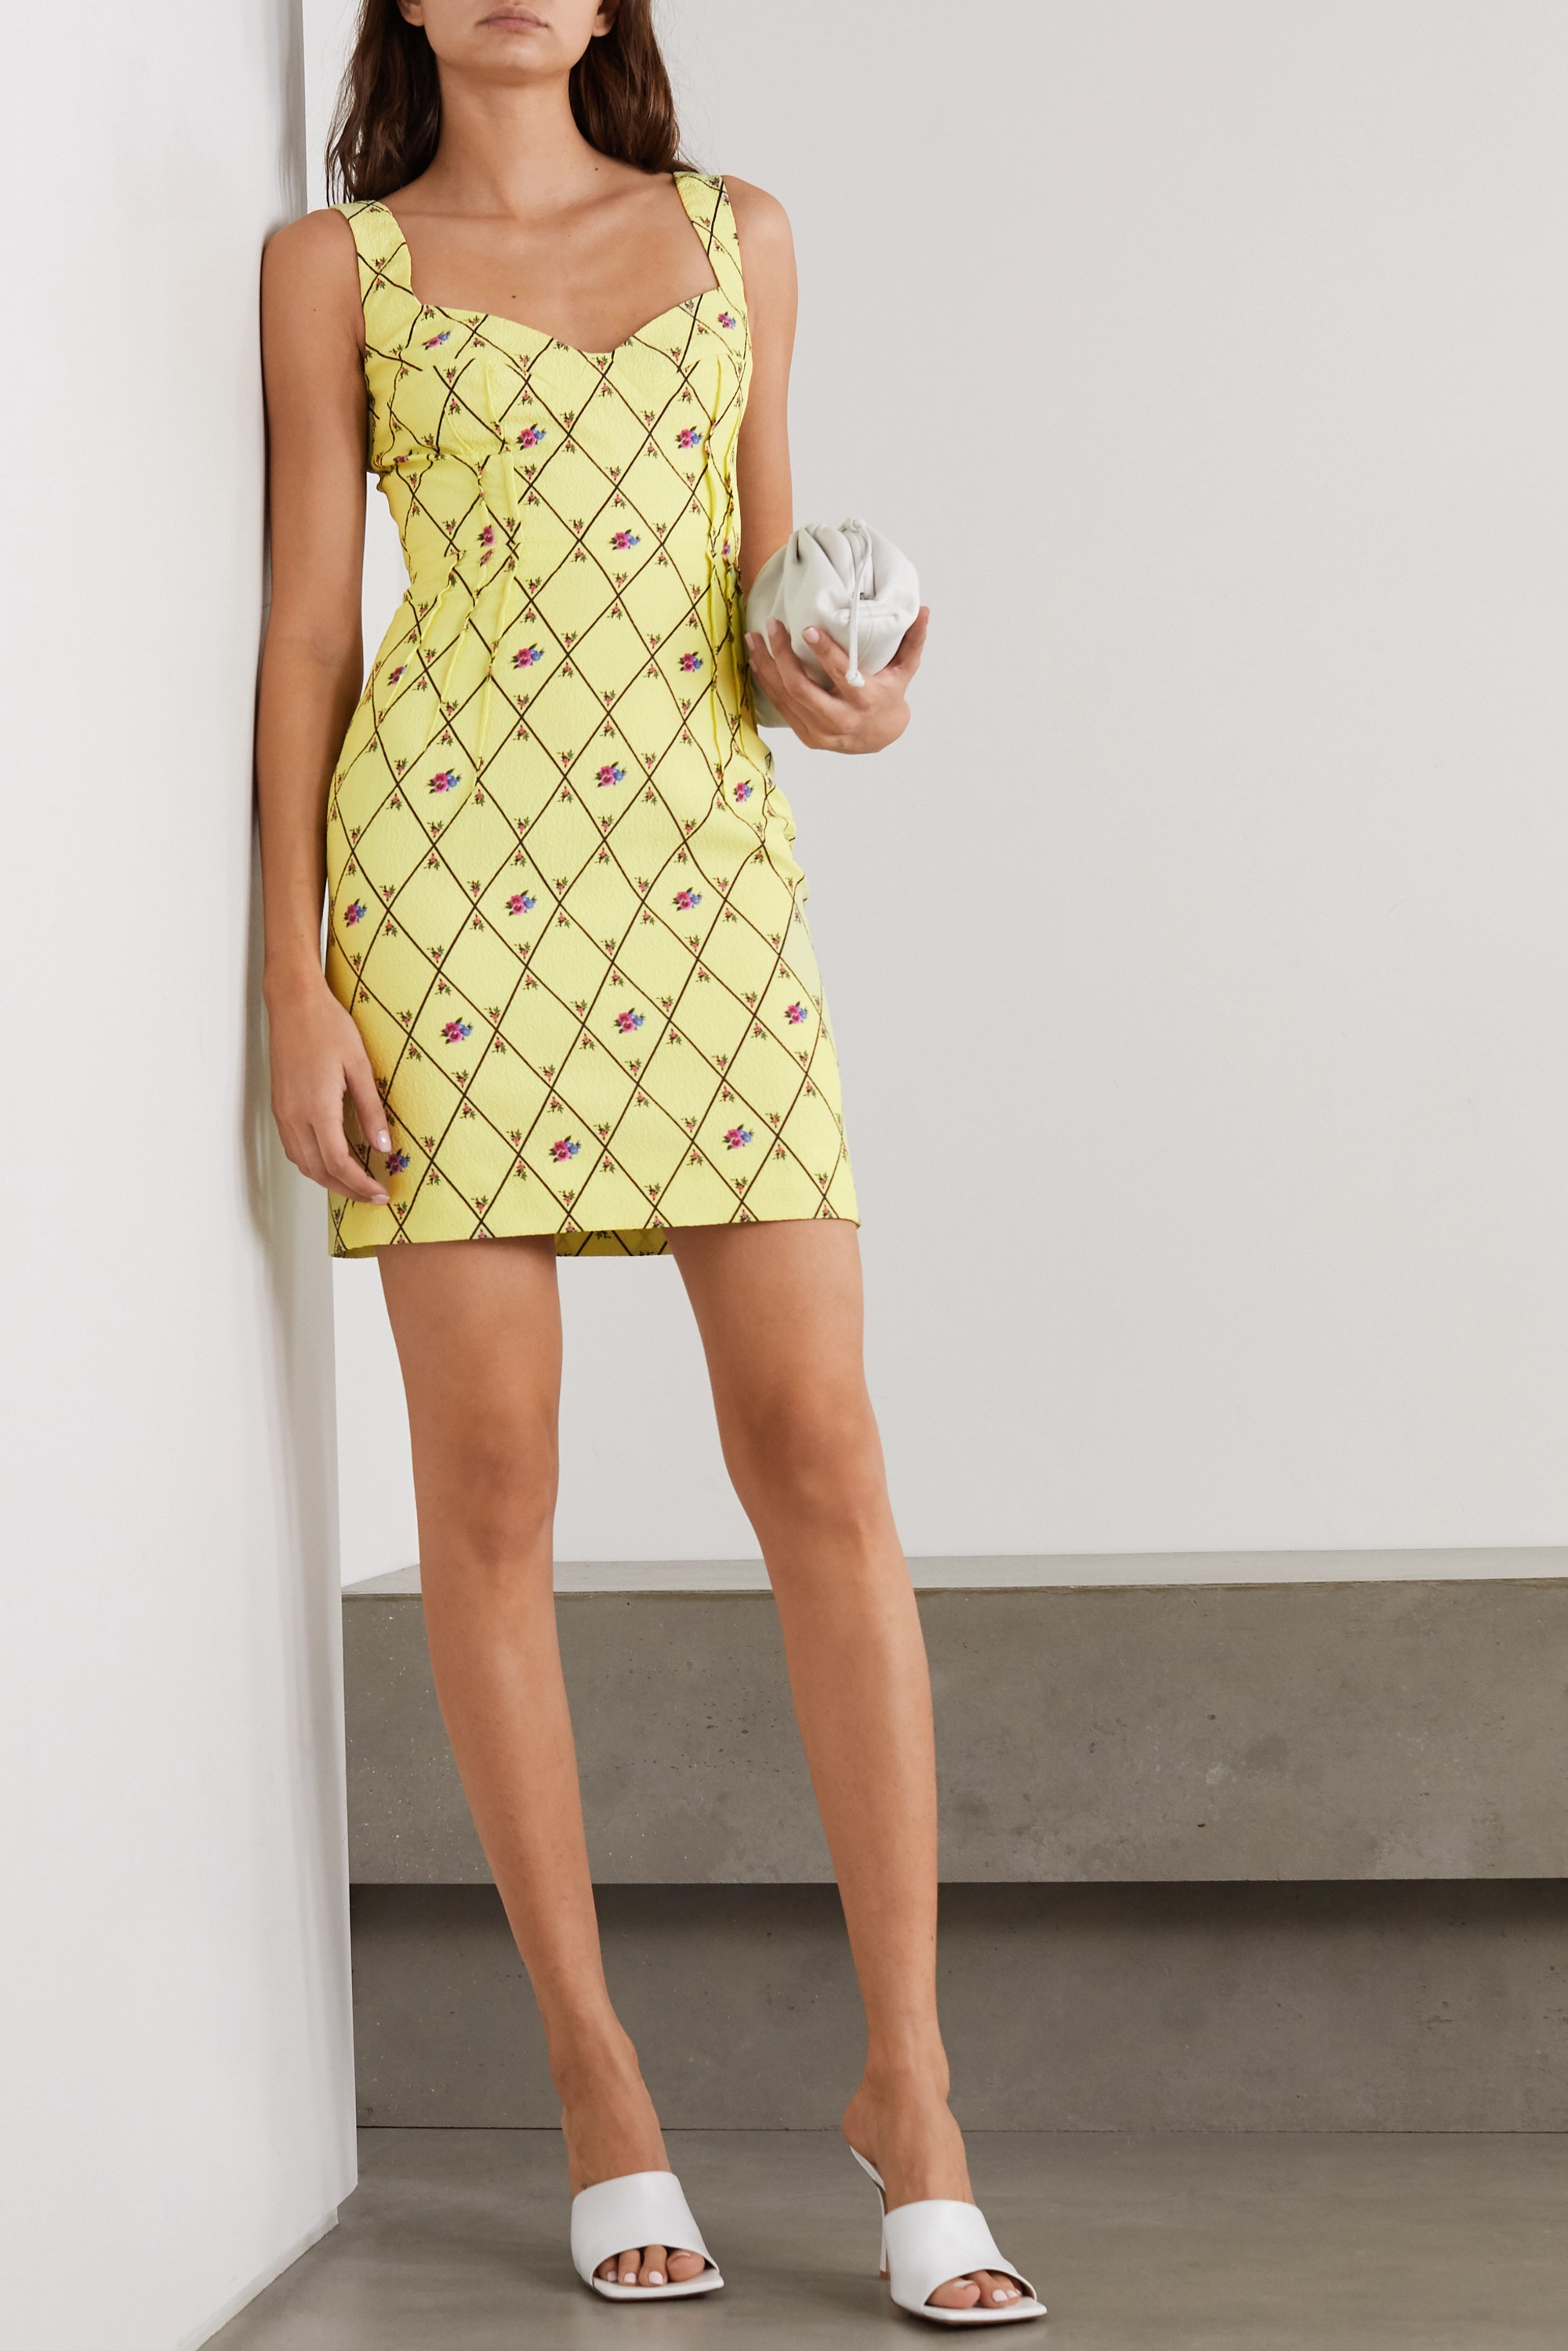 Emilia Wickstead Jude printed crepe mini dress